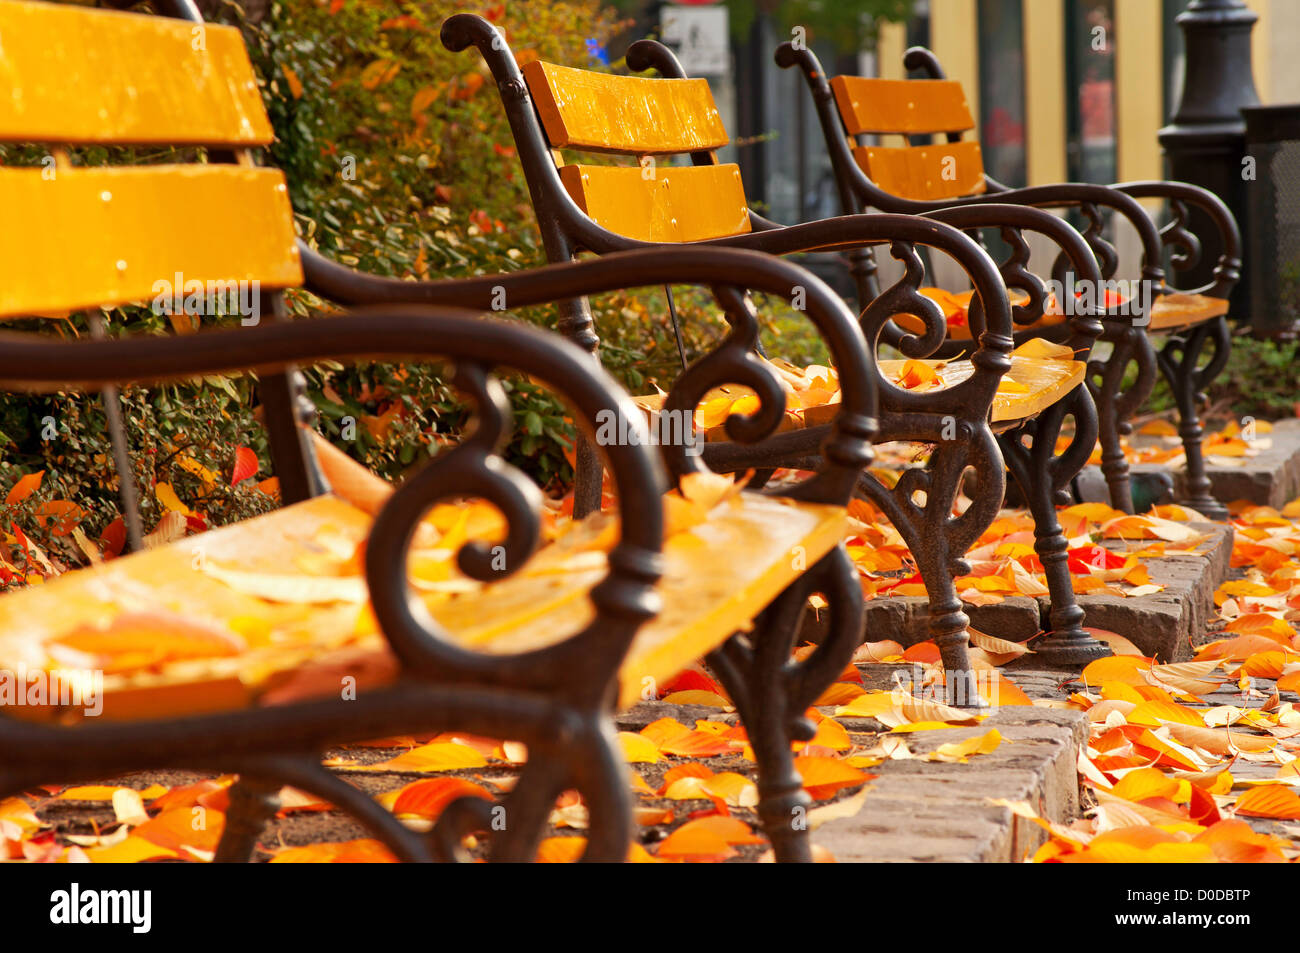 Autumn mood with benches in park - Stock Image